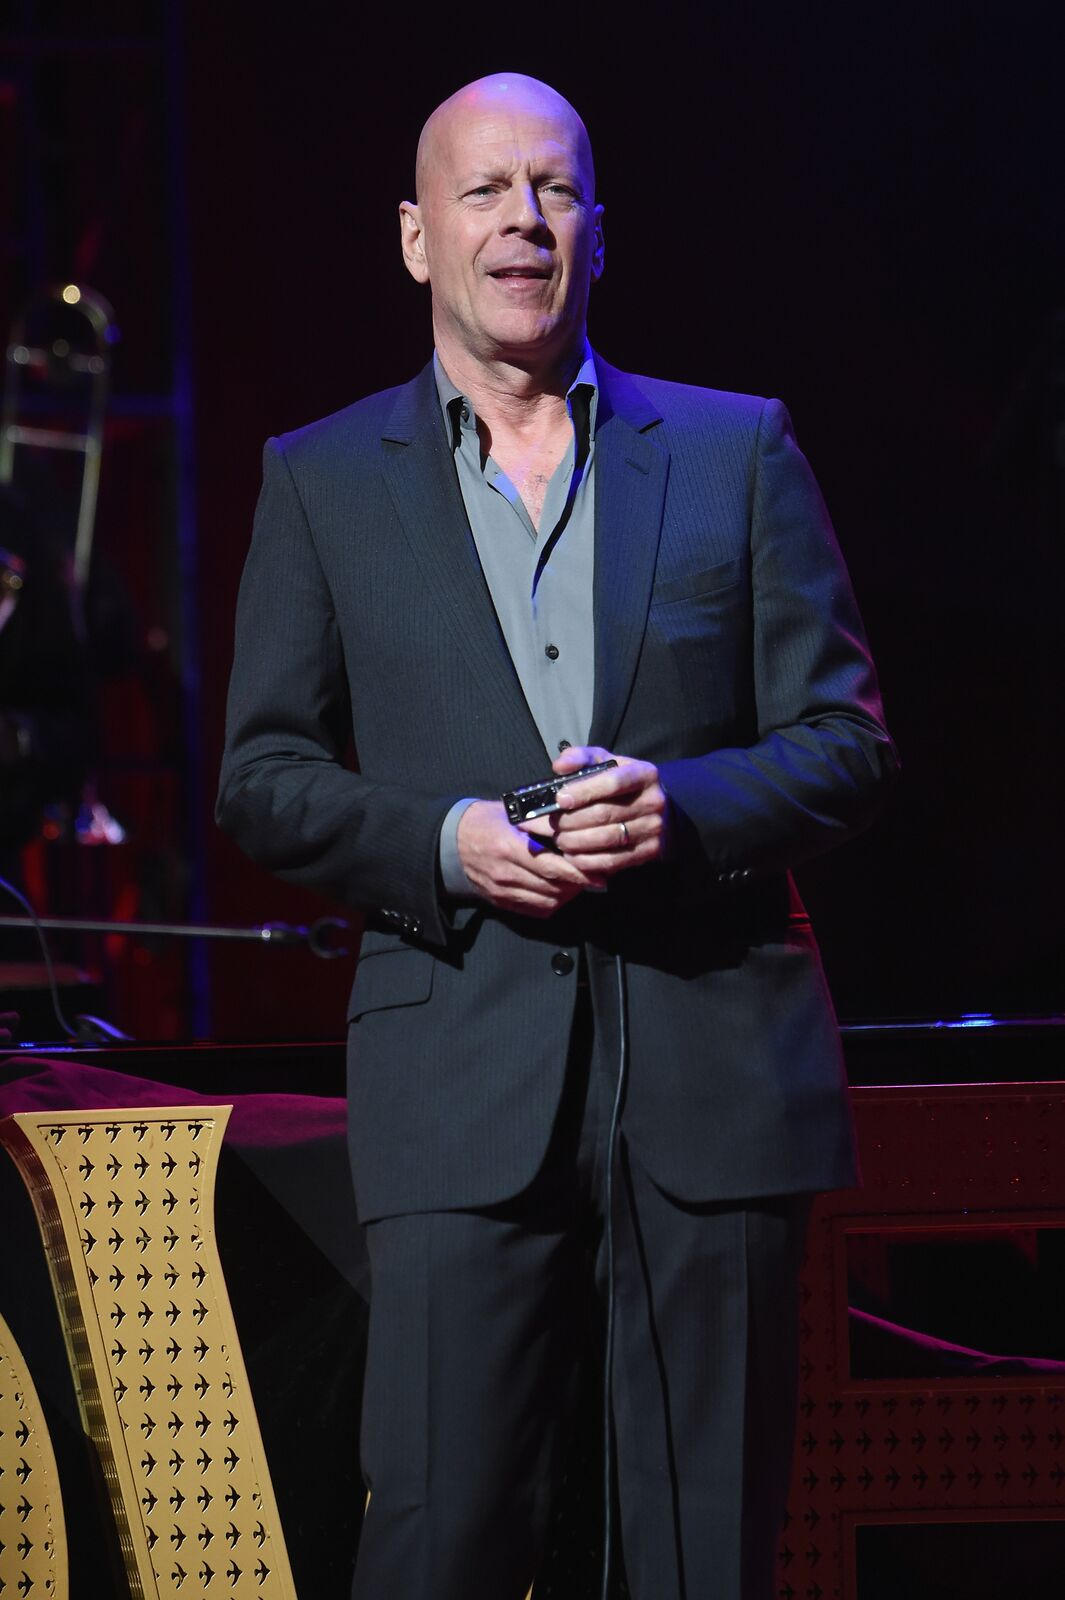 """Bruce Willis at """"Love Rocks NYC! A Change is Gonna Come: Celebrating Songs of Peace, Love and Hope"""" held at Beacon Theatre on March 9, 2017, in New York City 